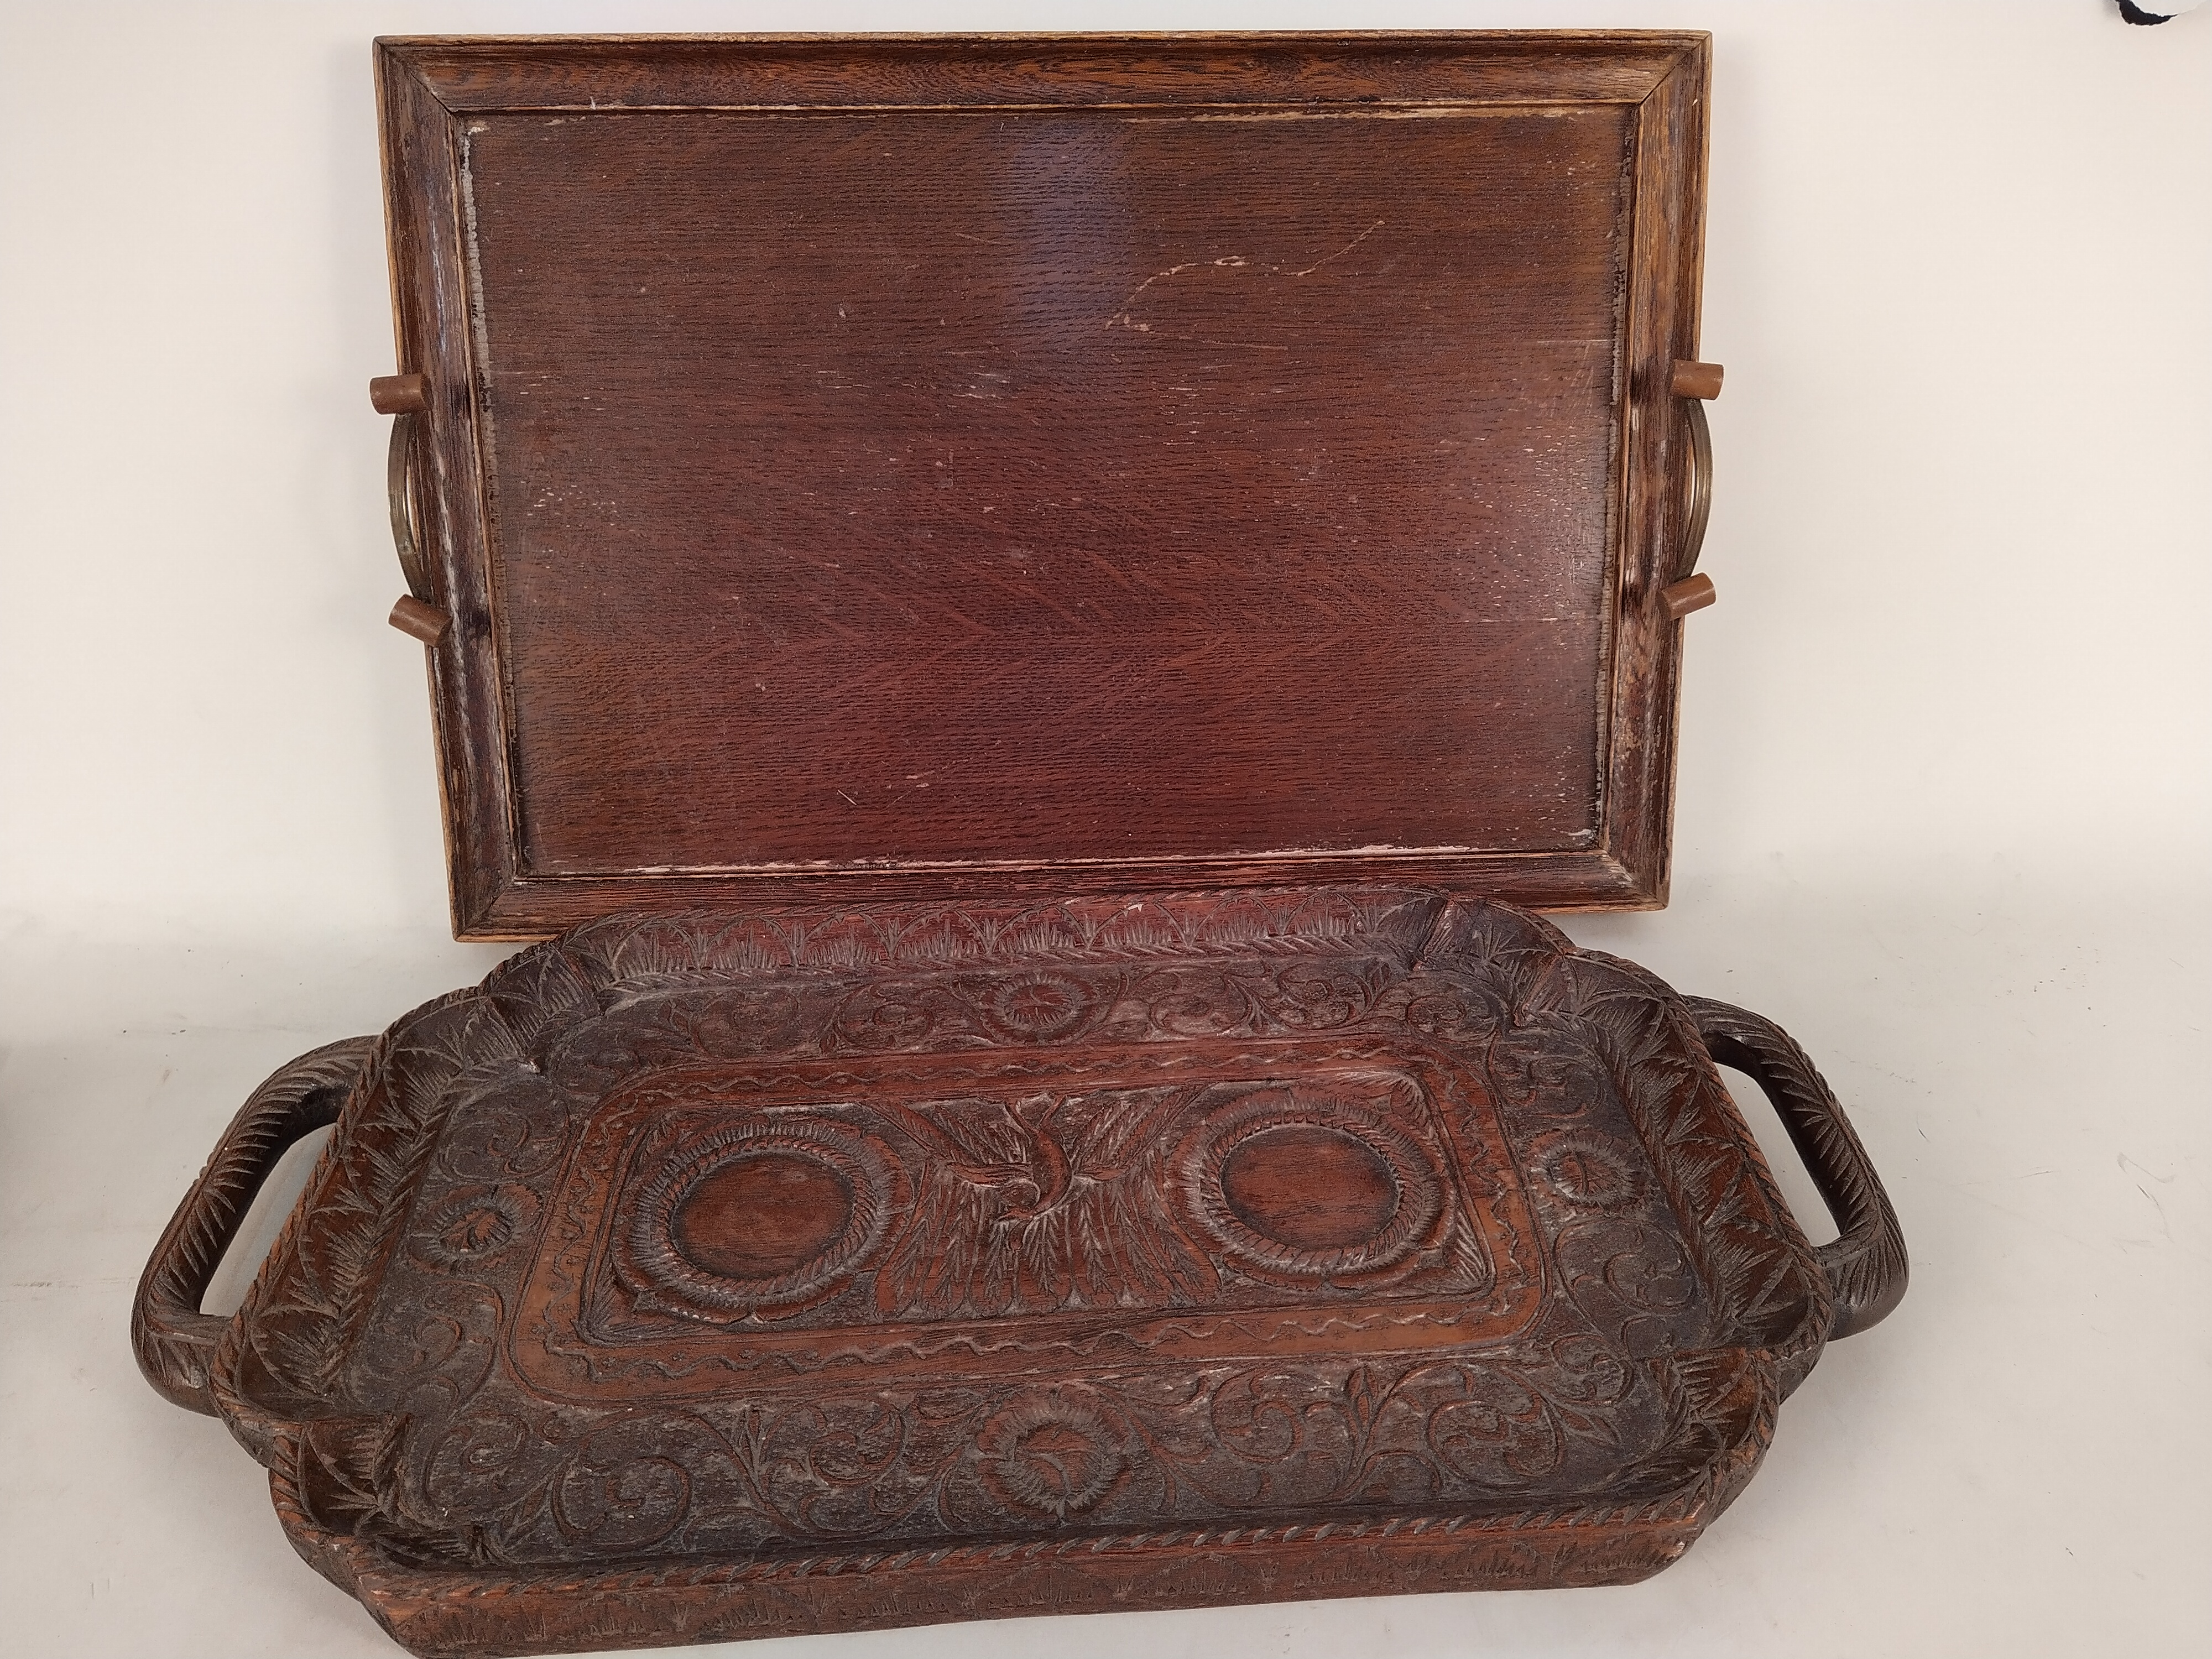 A selection of vintage carved wooden trays including a Trinidad nut tray - Image 2 of 3